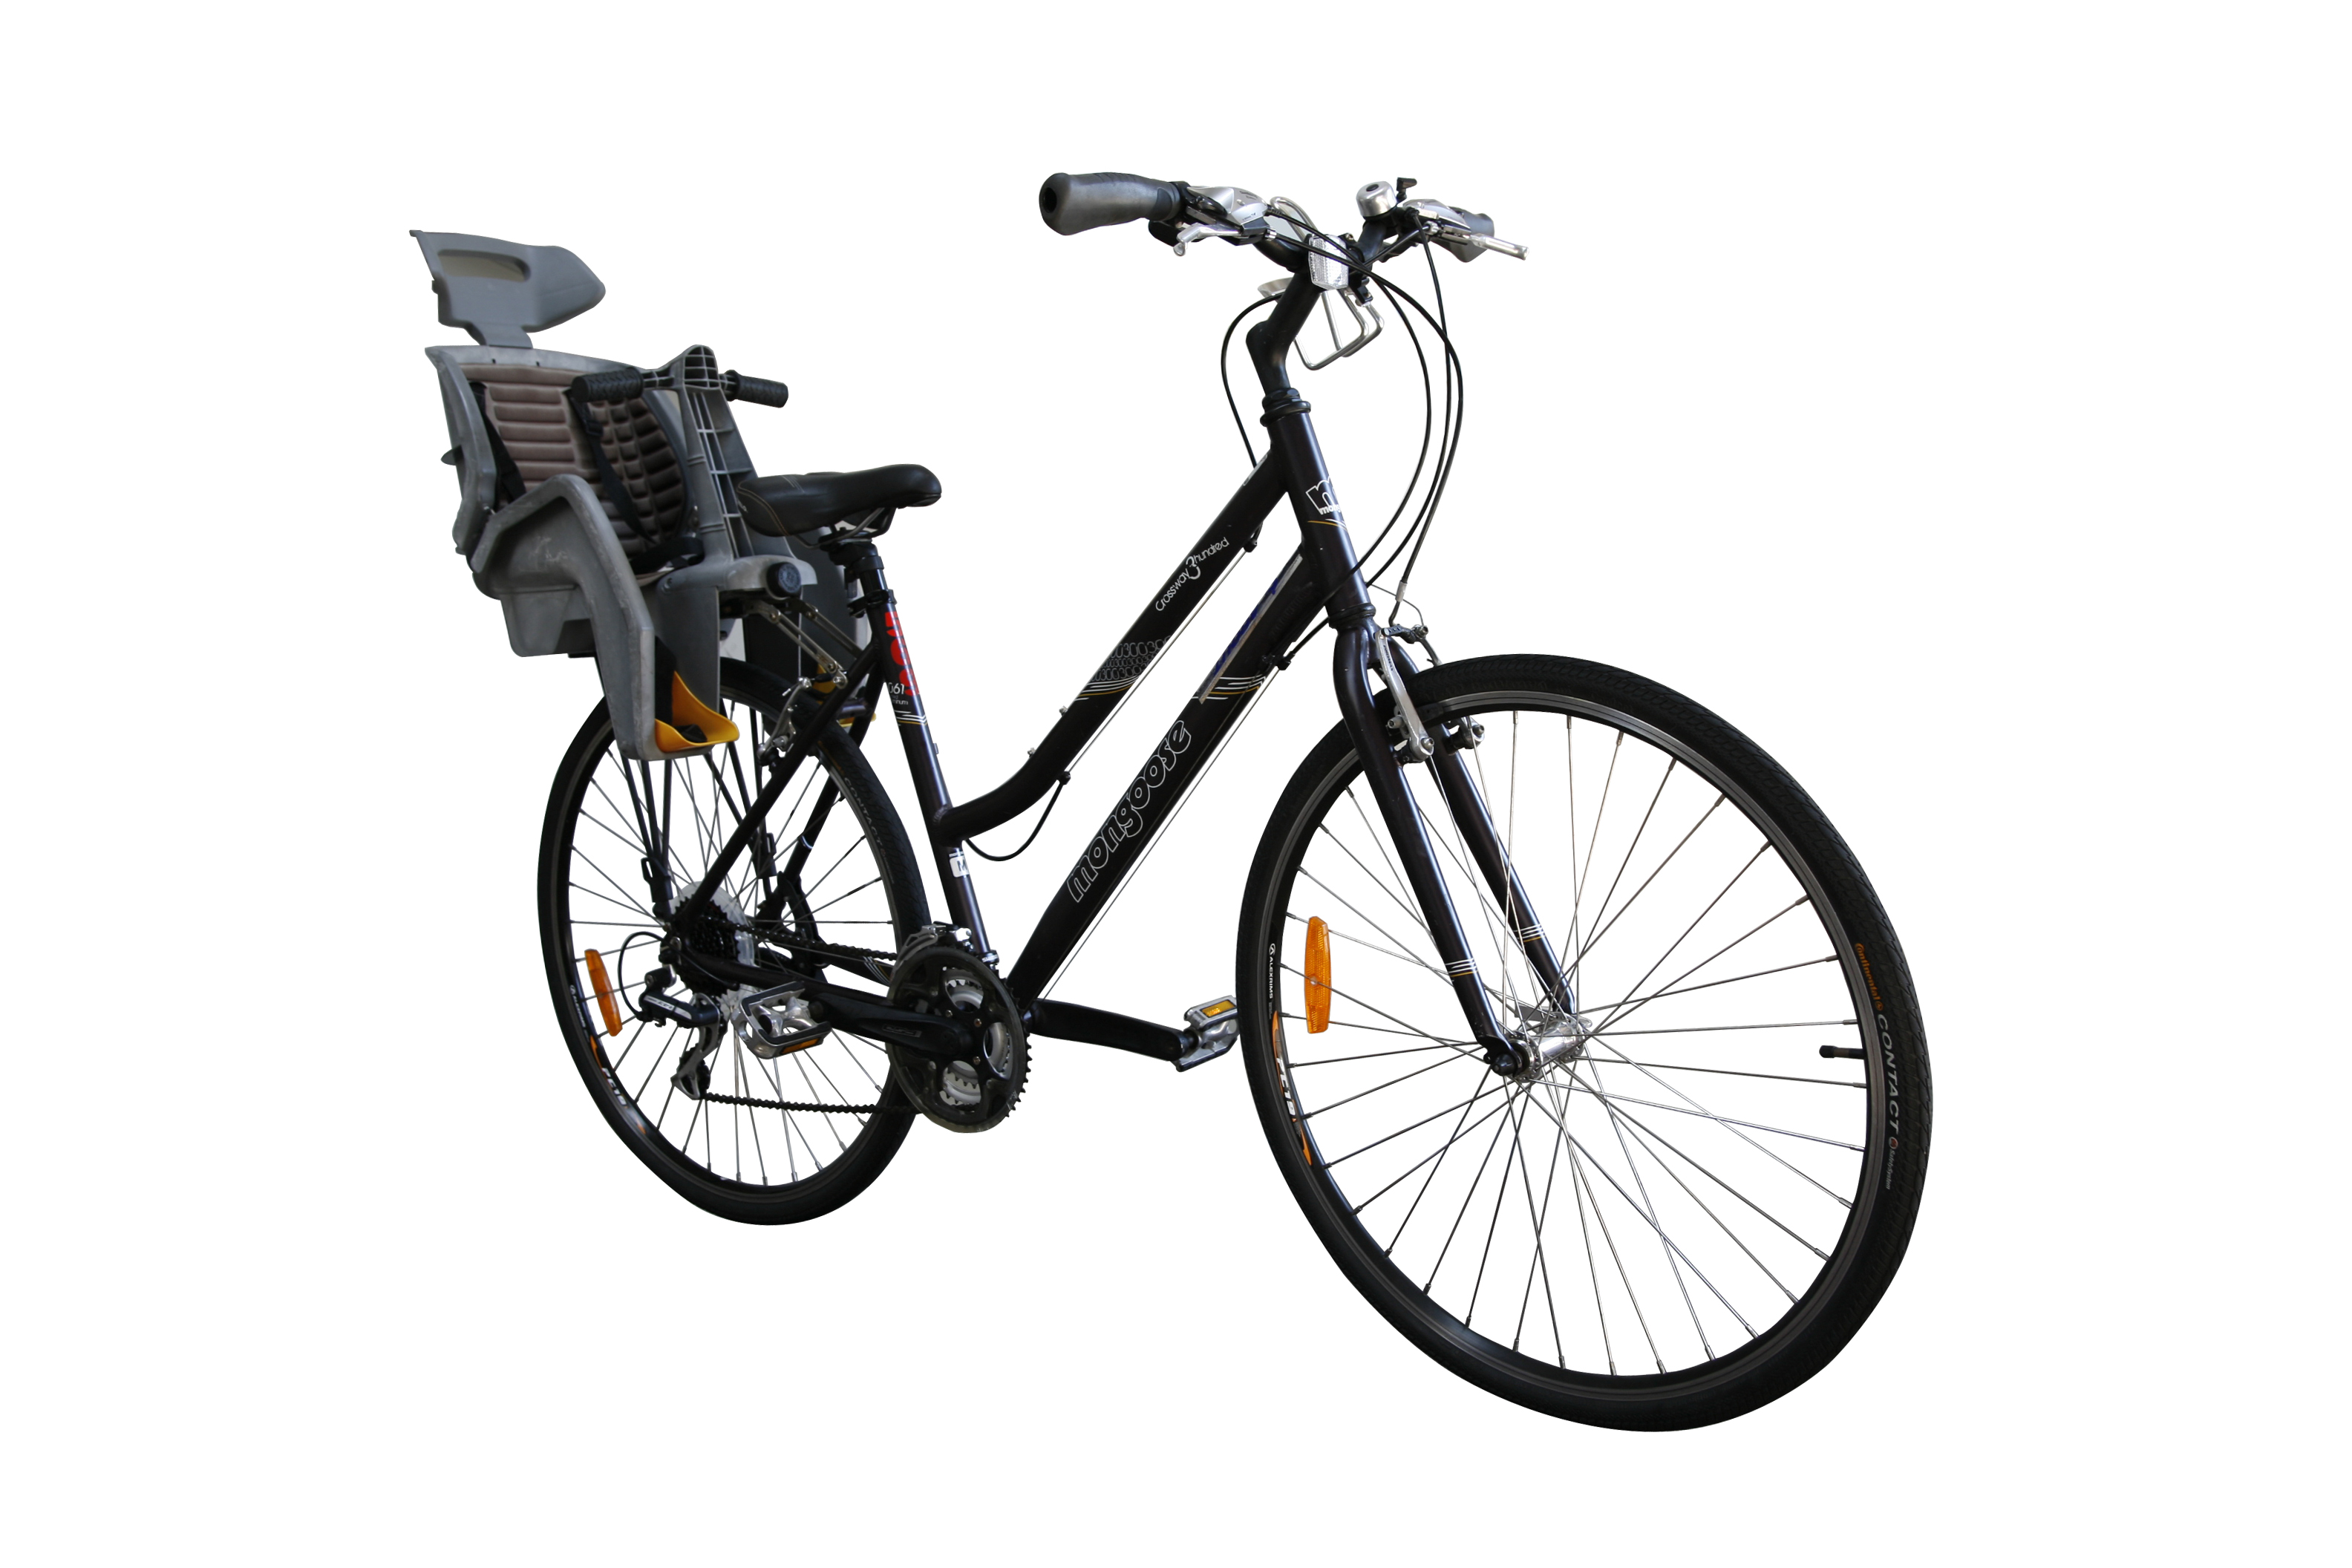 Child Bikes Seats And Trailers About Bike Hire